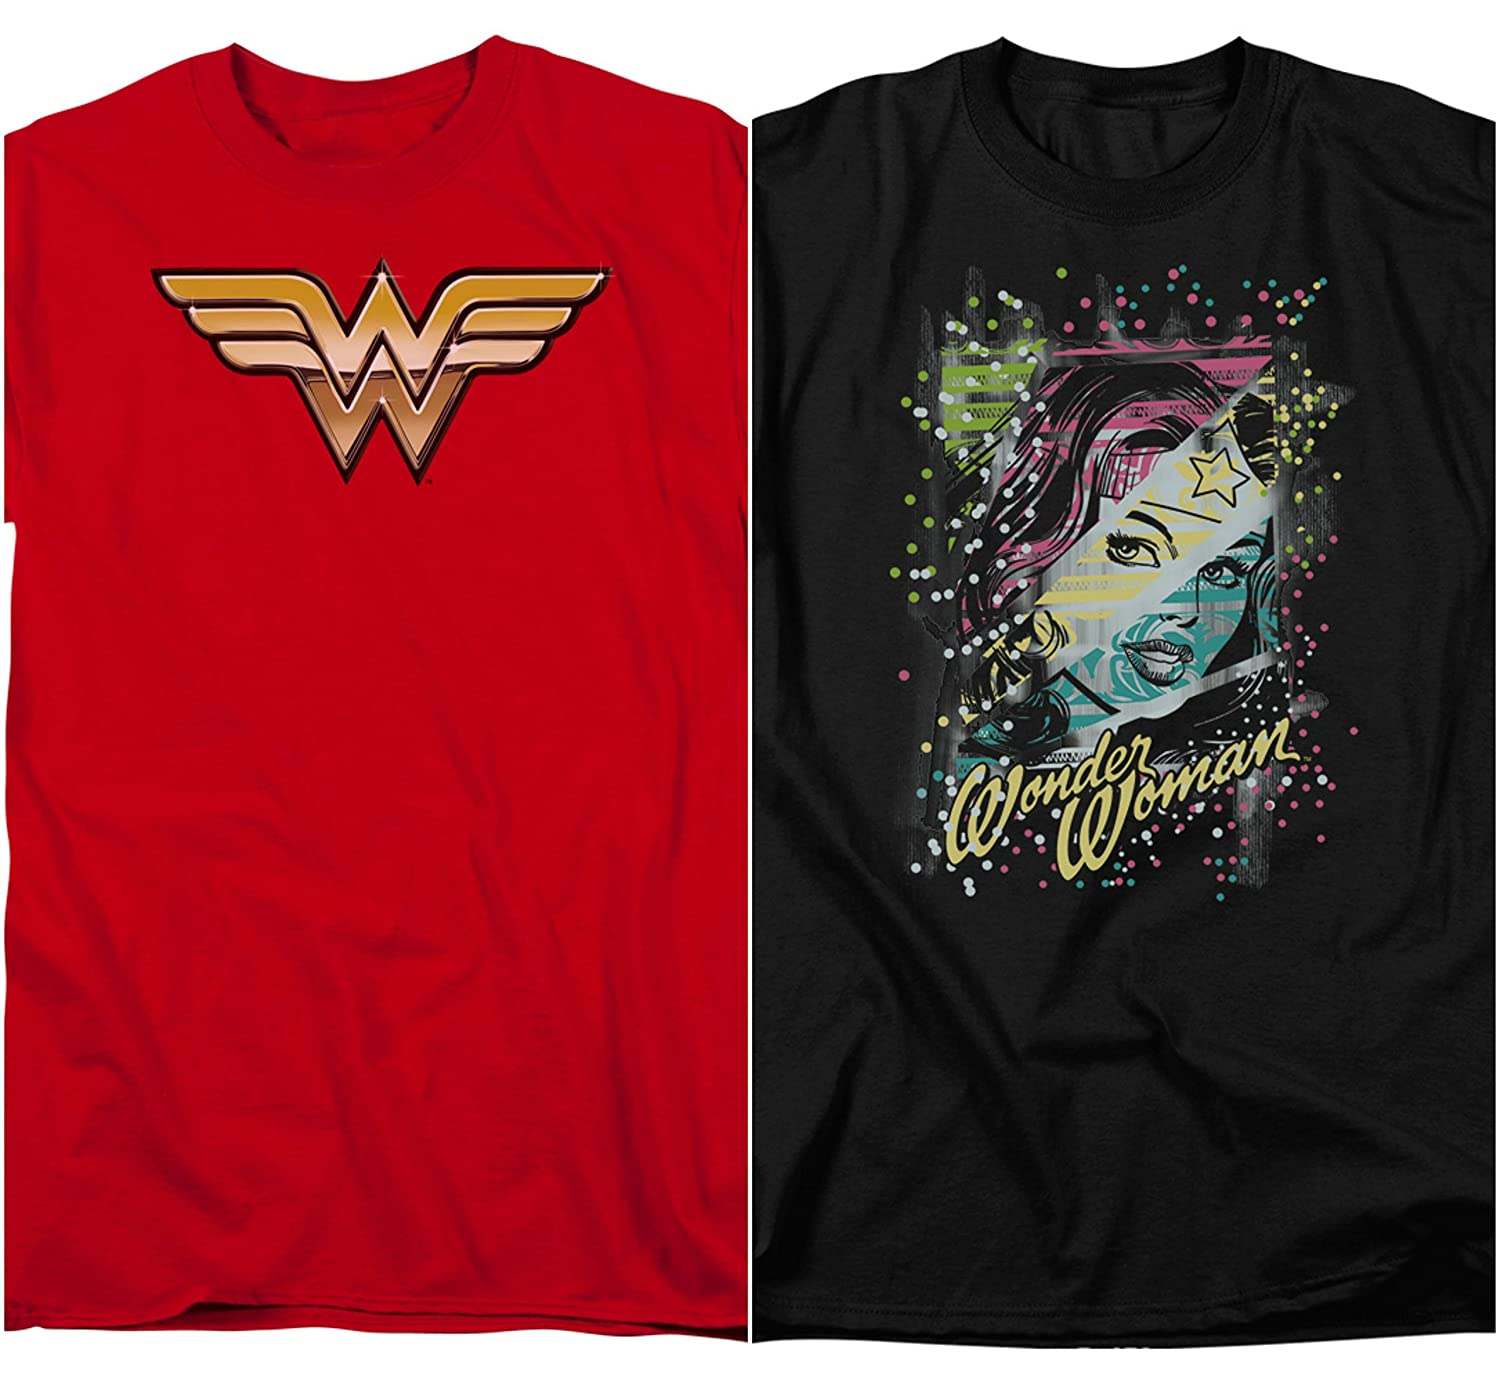 c3290e205 Amazon.com: Trevco Official 2 Pack Combo Wonder Woman DC Comics Justice  League Classic Retro Vintage Men's Adult Graphic T-Shirts: Clothing